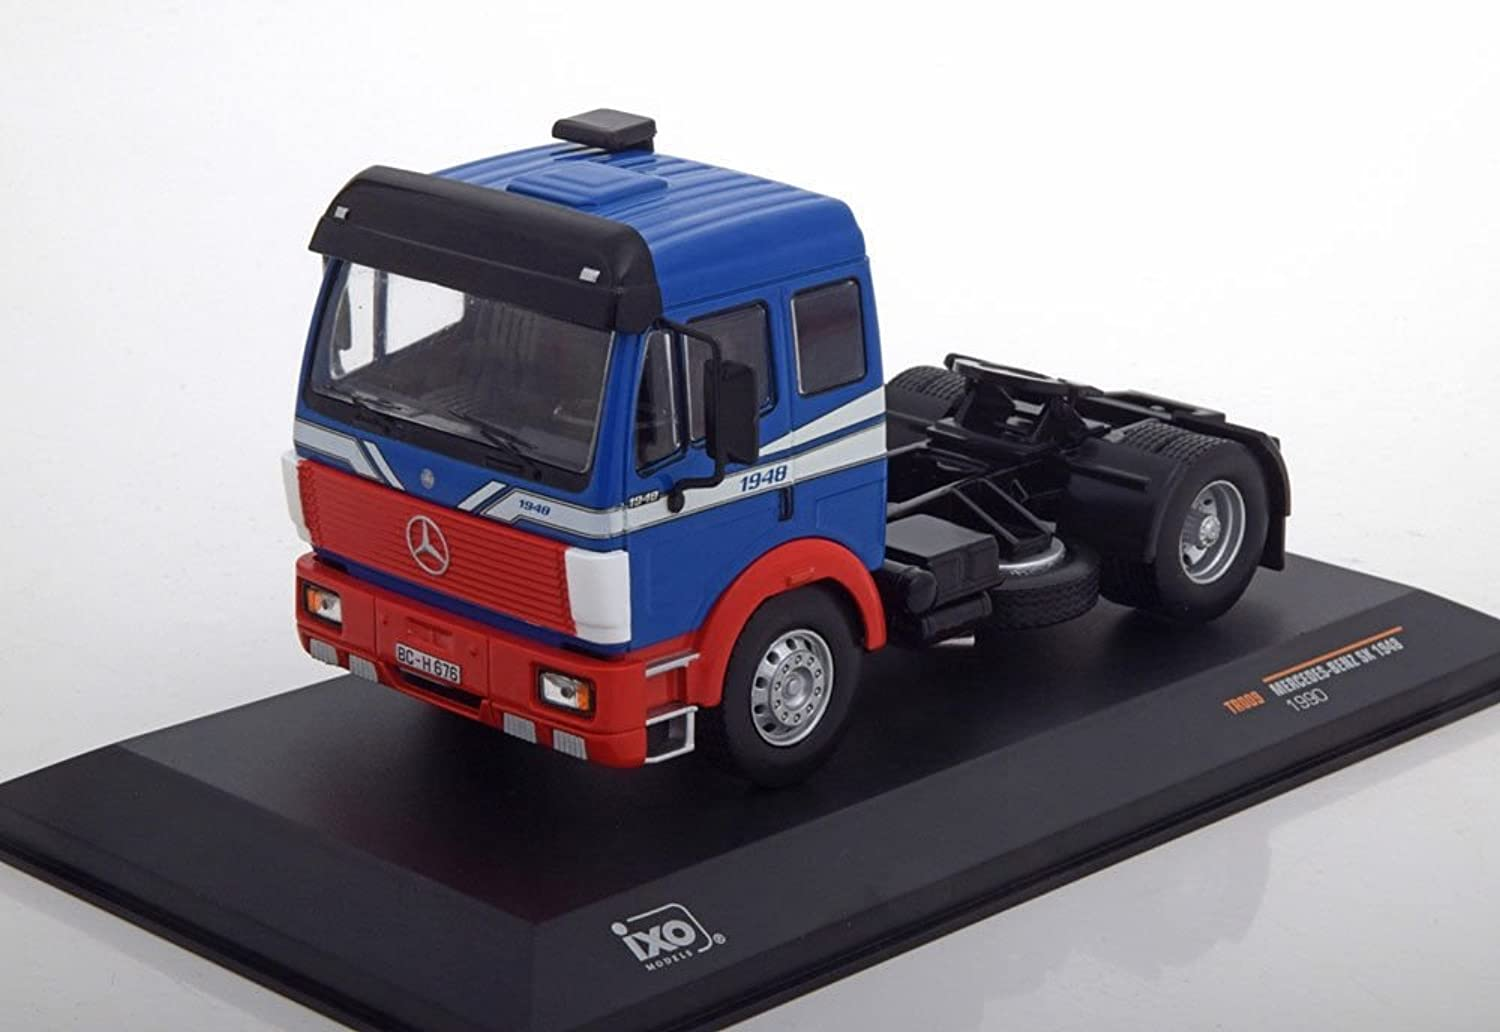 Ixo MercedesBenz SK1948  Scale  1 43, TR009, bluee Red